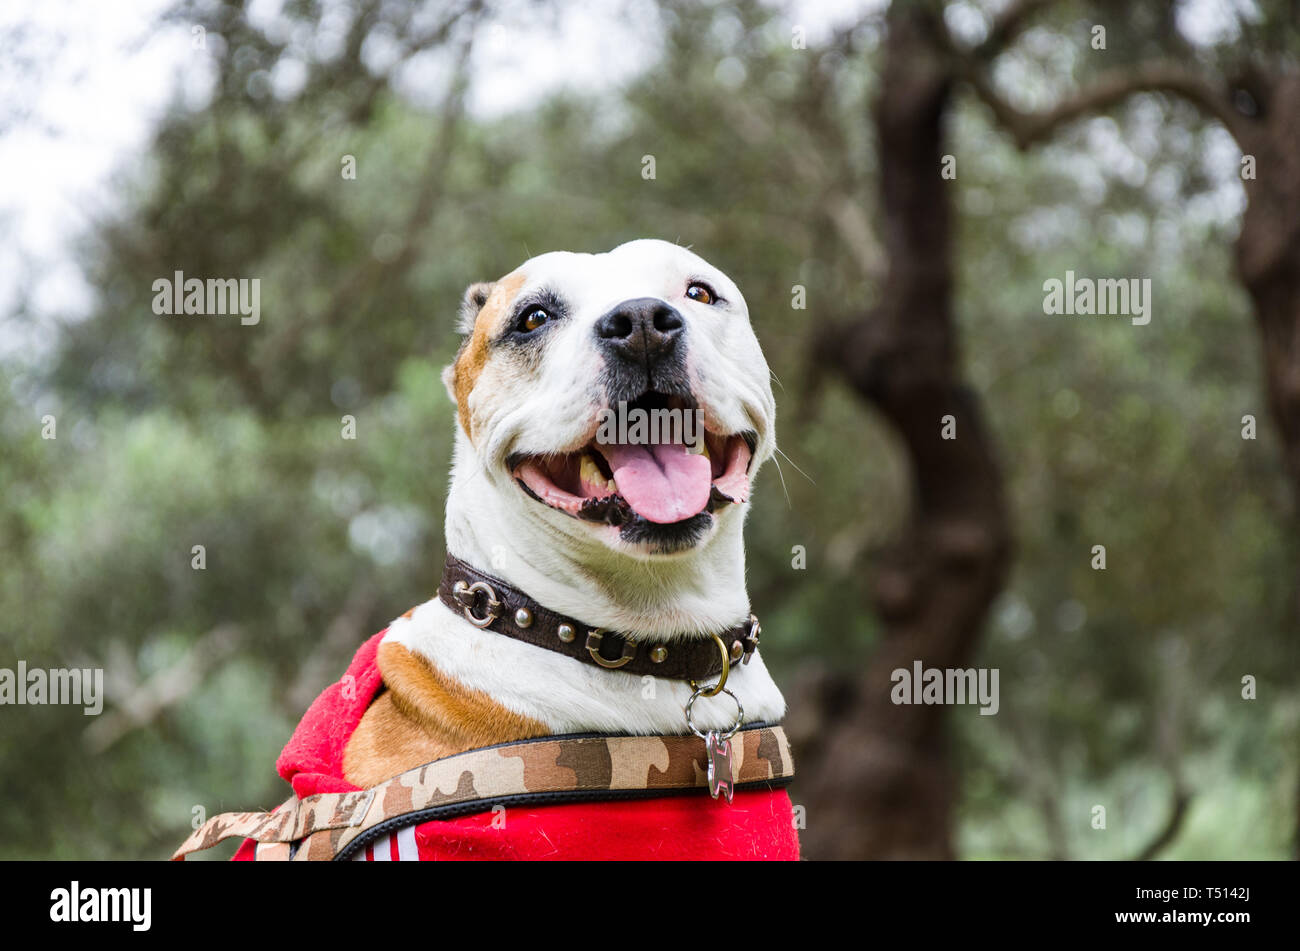 Brown and white pitbull mix, dog lying down and smiling in the park. - Stock Image